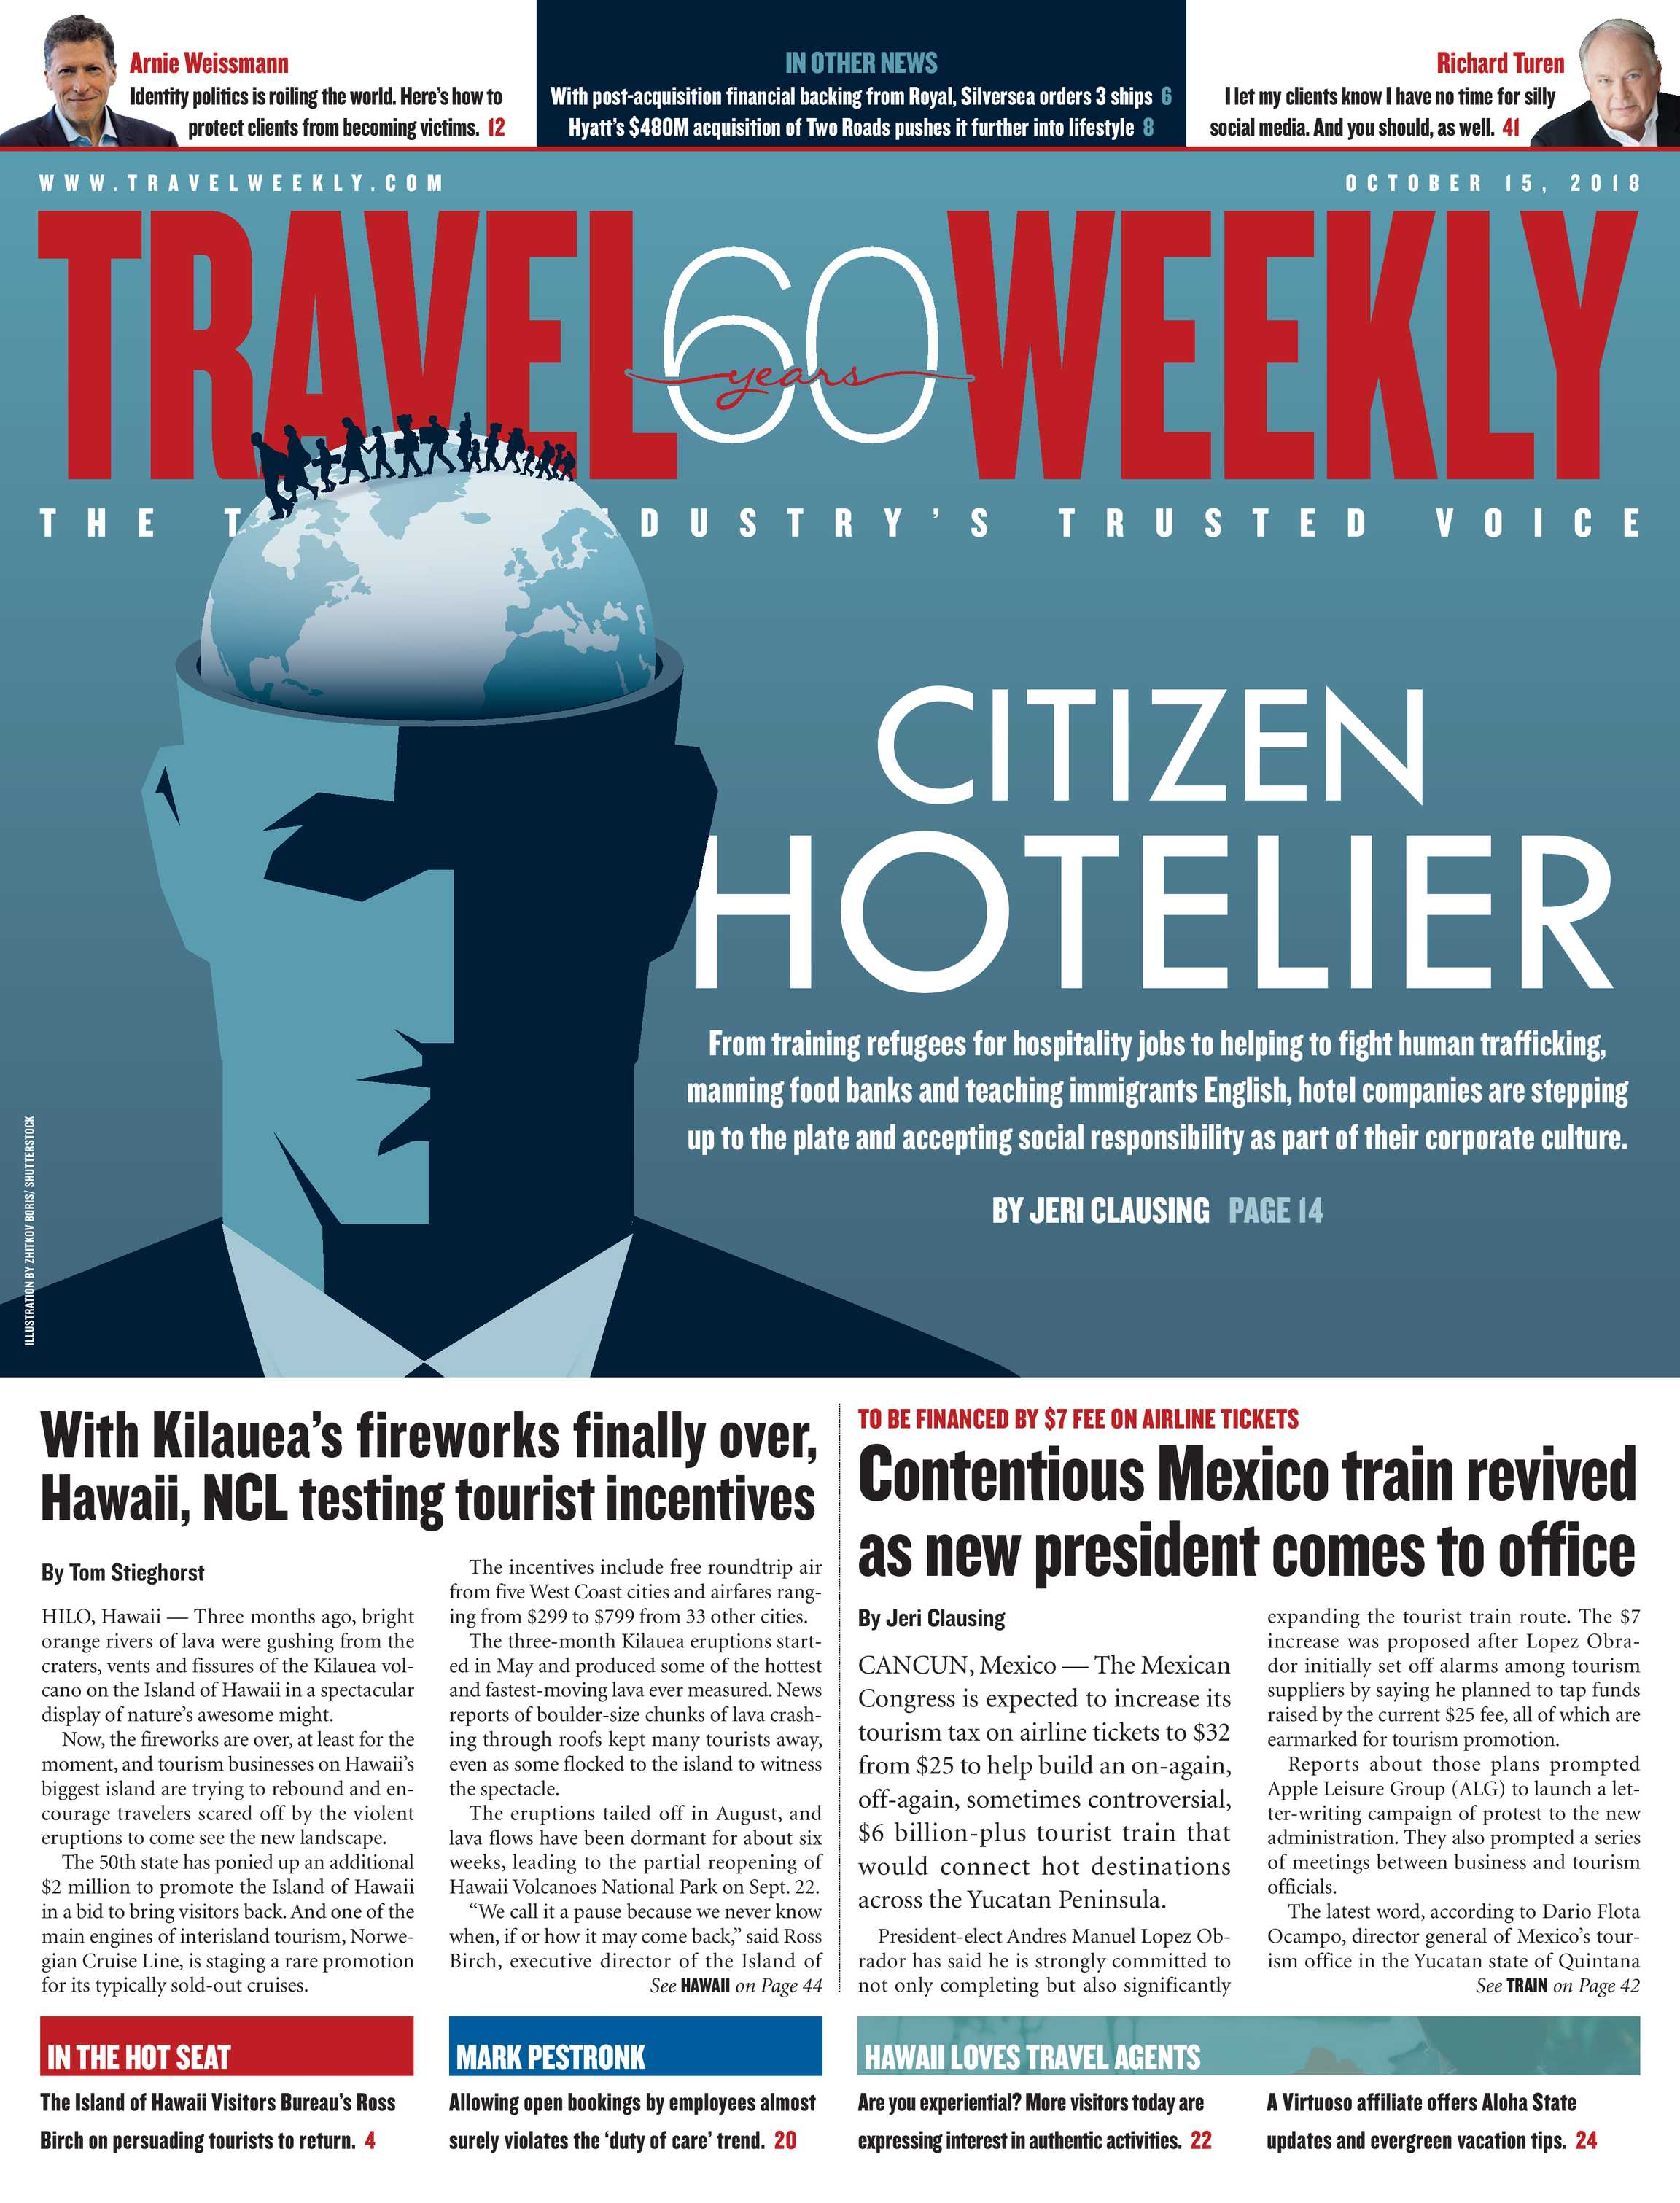 Travel Weekly - October 15 2018 - page Cover